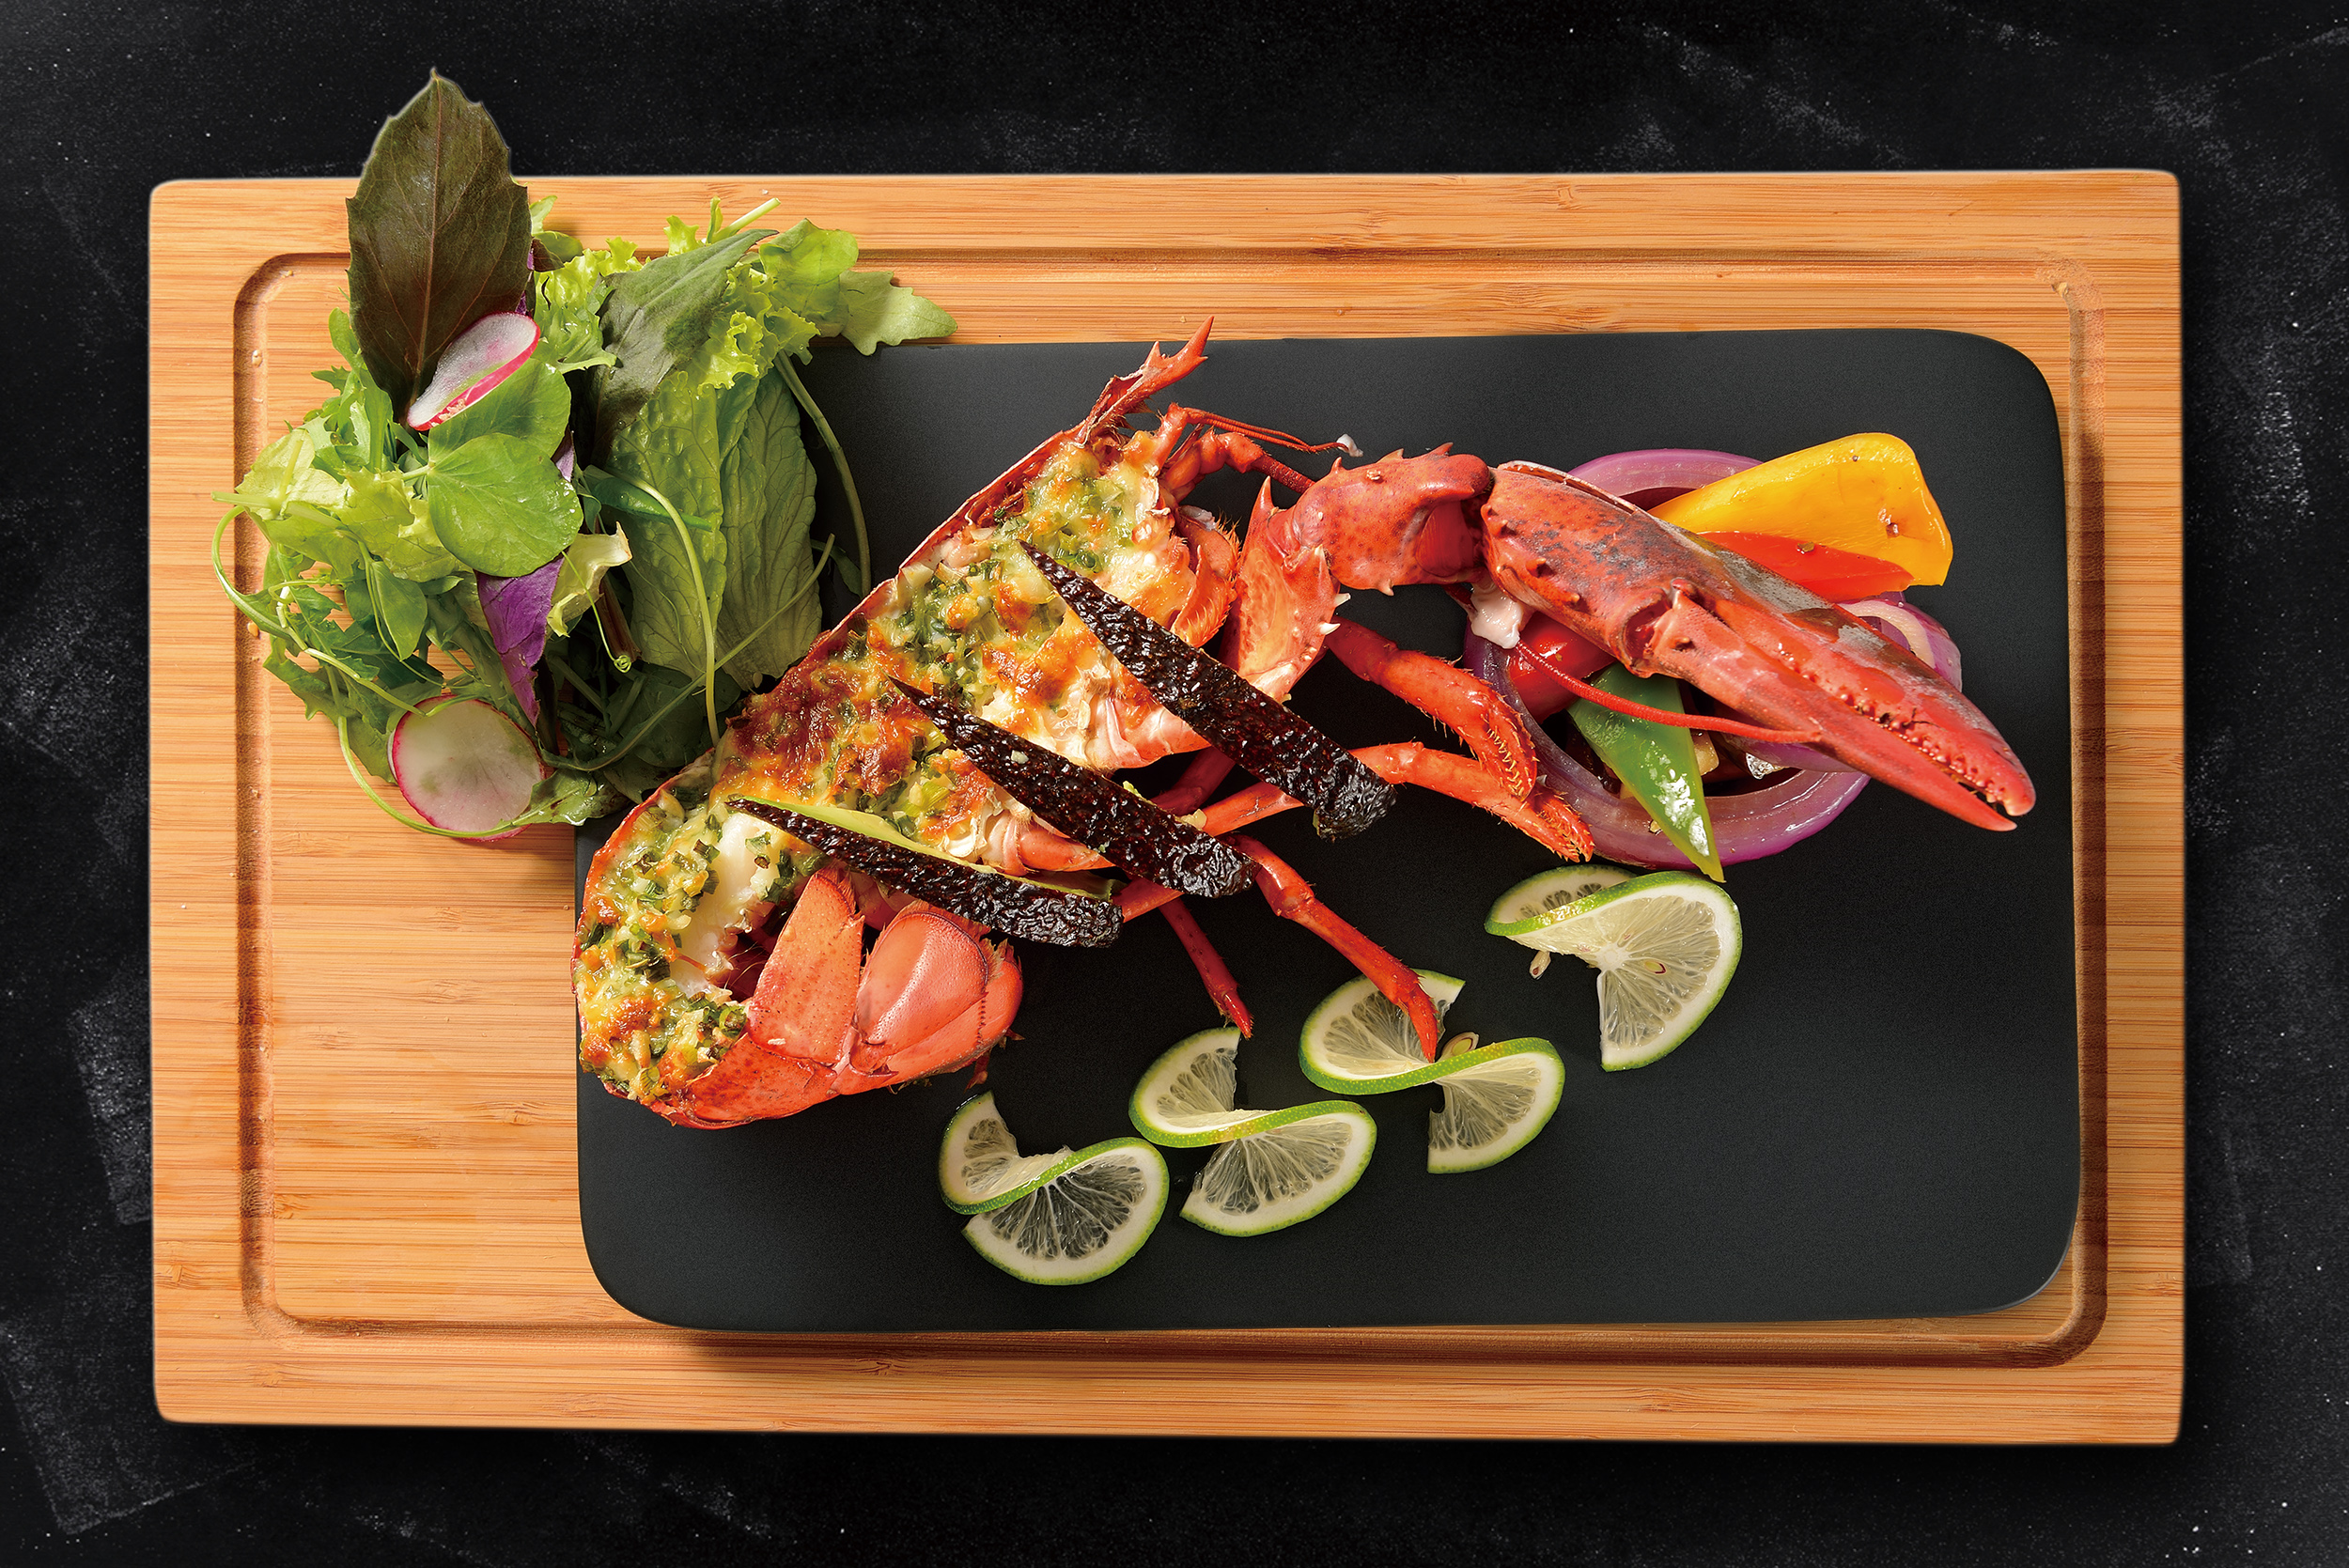 <b>Roasted Boston Lobster with Avocado and Oyster Sauce (Half)</b><br/>A black and green Boston lobster special with tender and delicate meat.